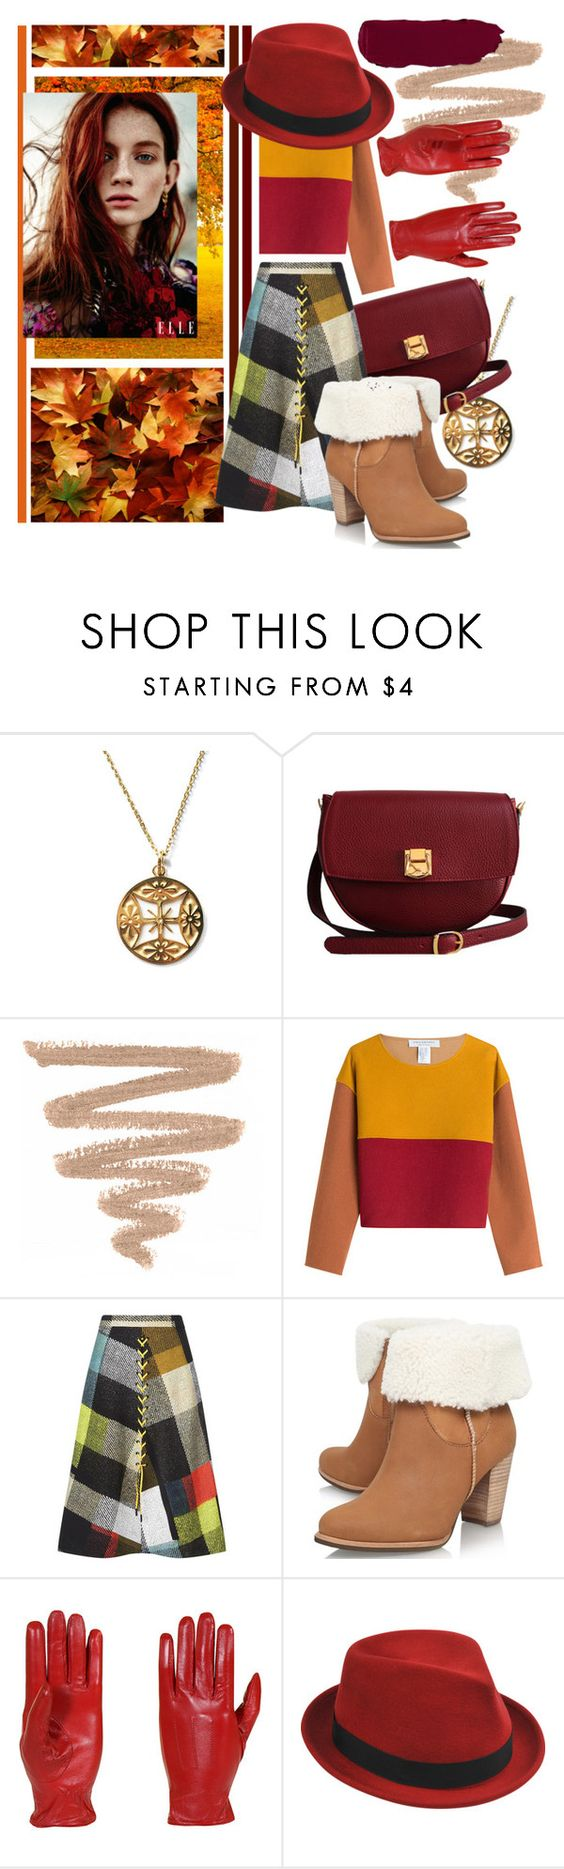 """""""the queen of autumn"""" by arta ❤ liked on Polyvore featuring Nikko, The Code, Philosophy di Lorenzo Serafini, Preen, UGG Australia, Isotoner and Stetson"""